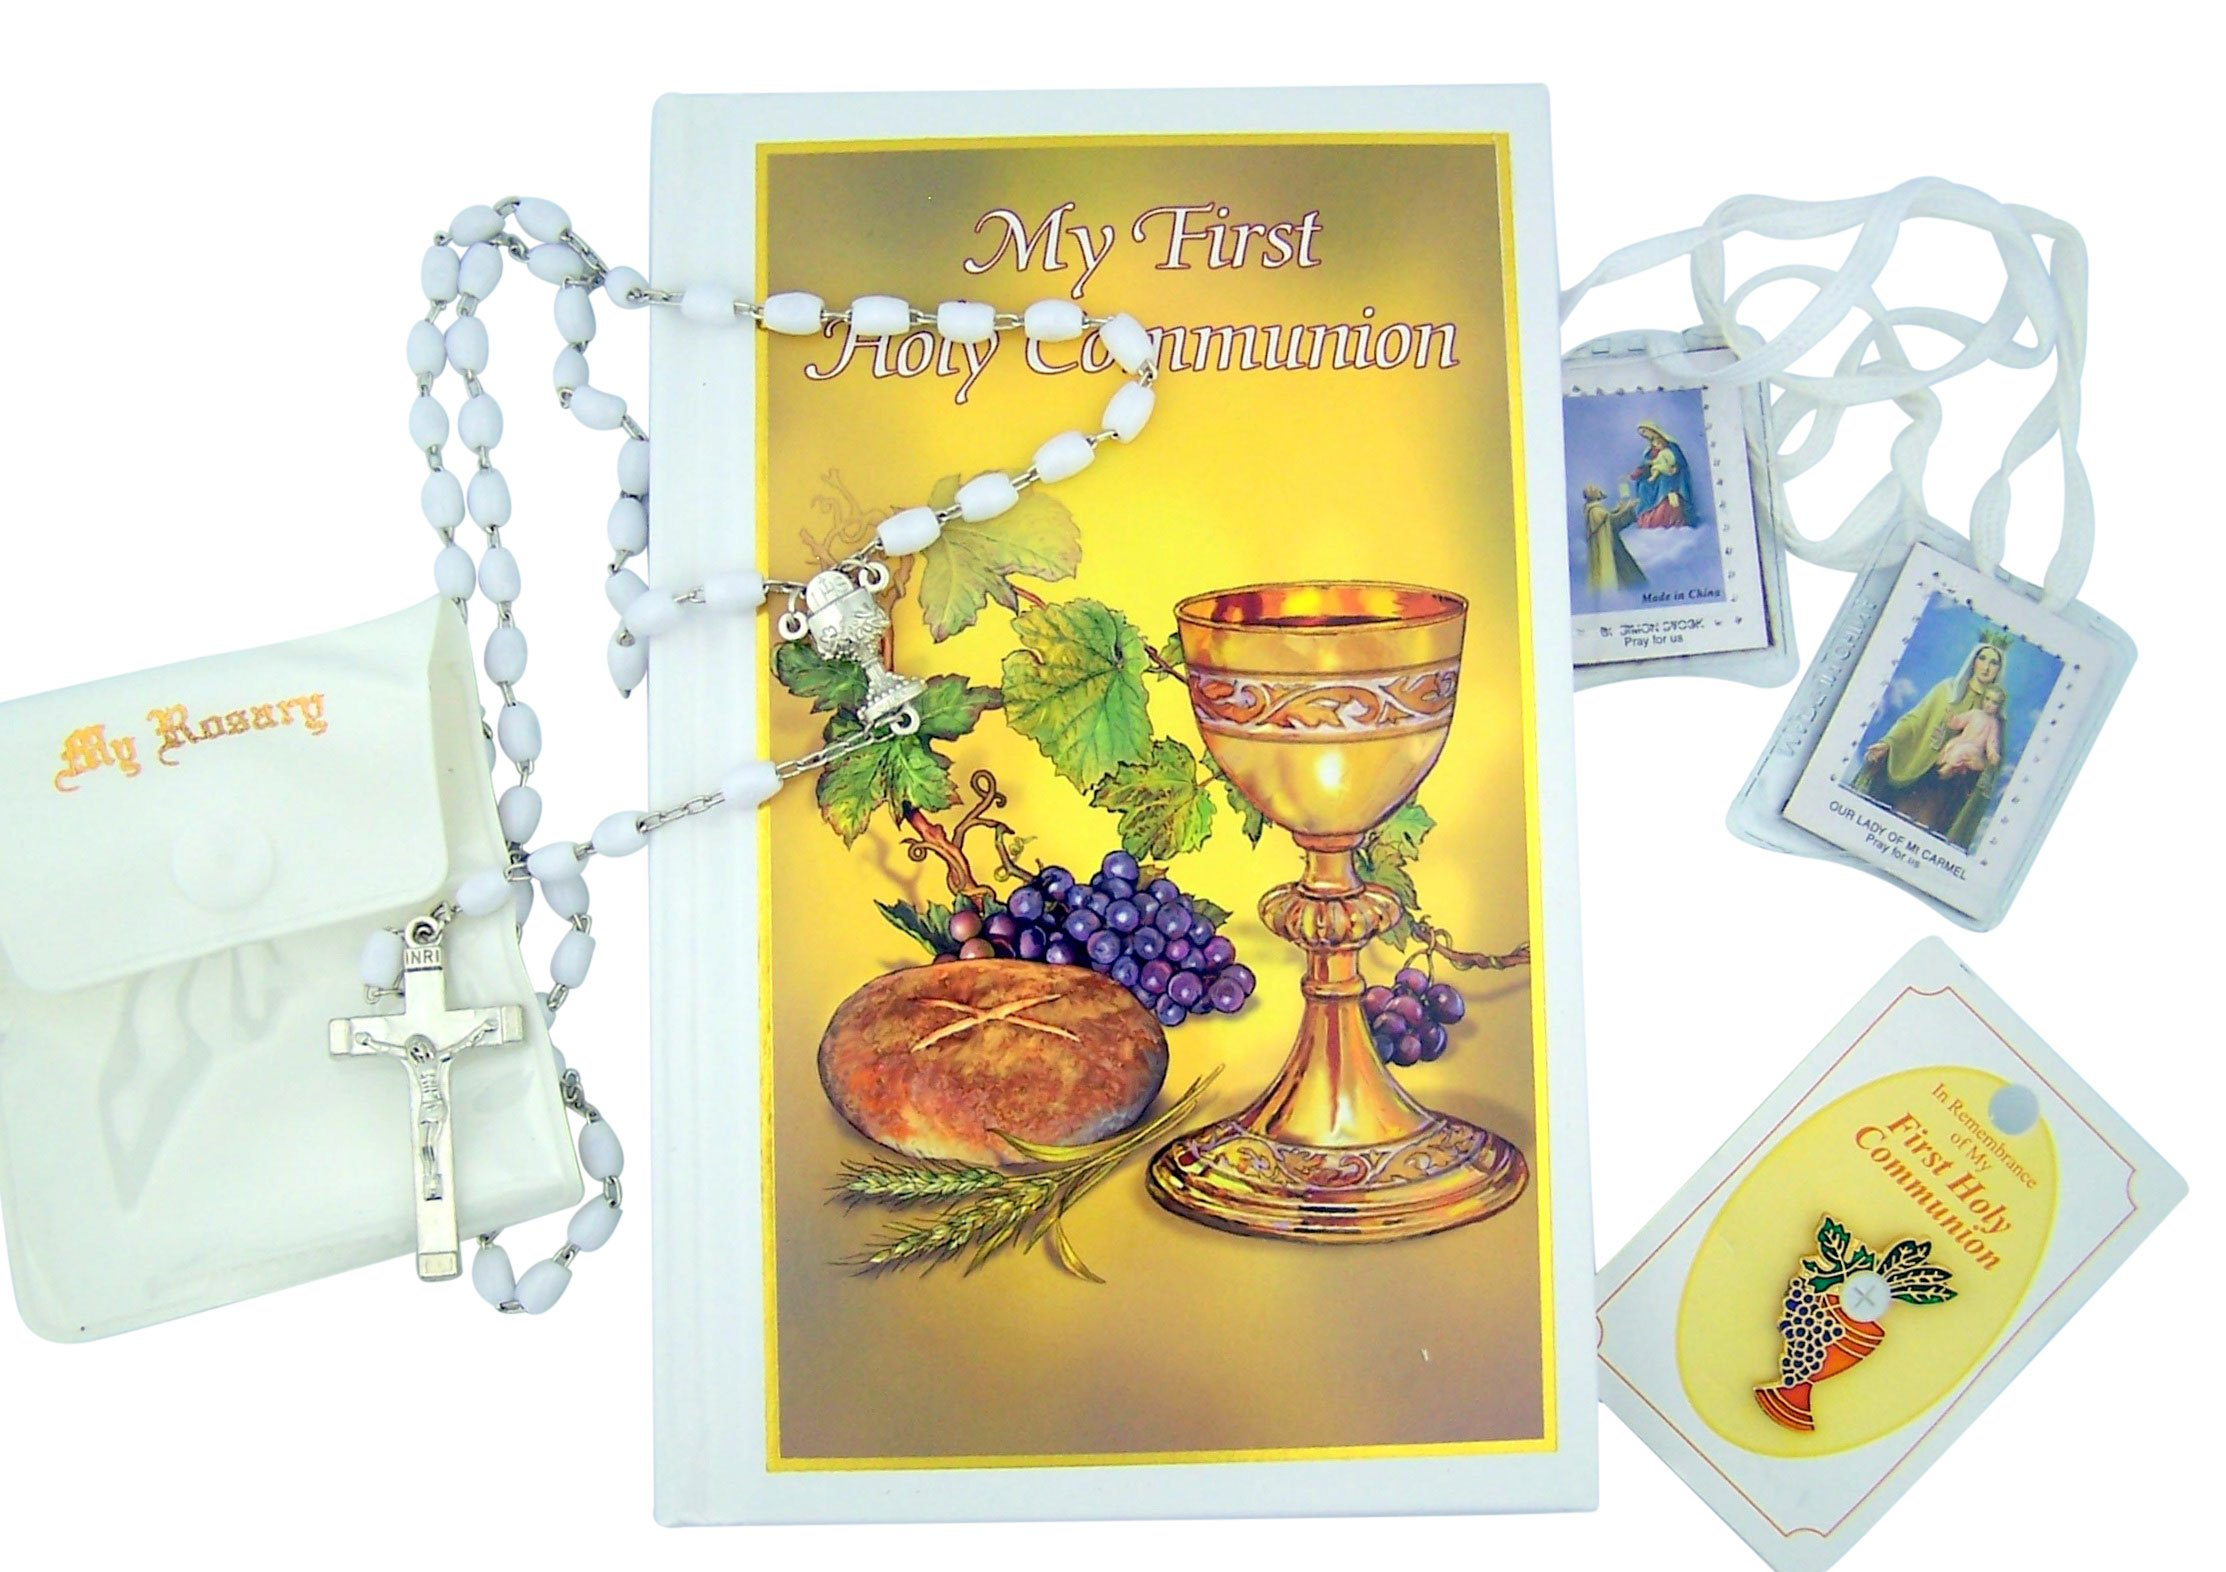 Everlasting Life My Holy First Communion Deluxe Box Set for Girl with Mass Book